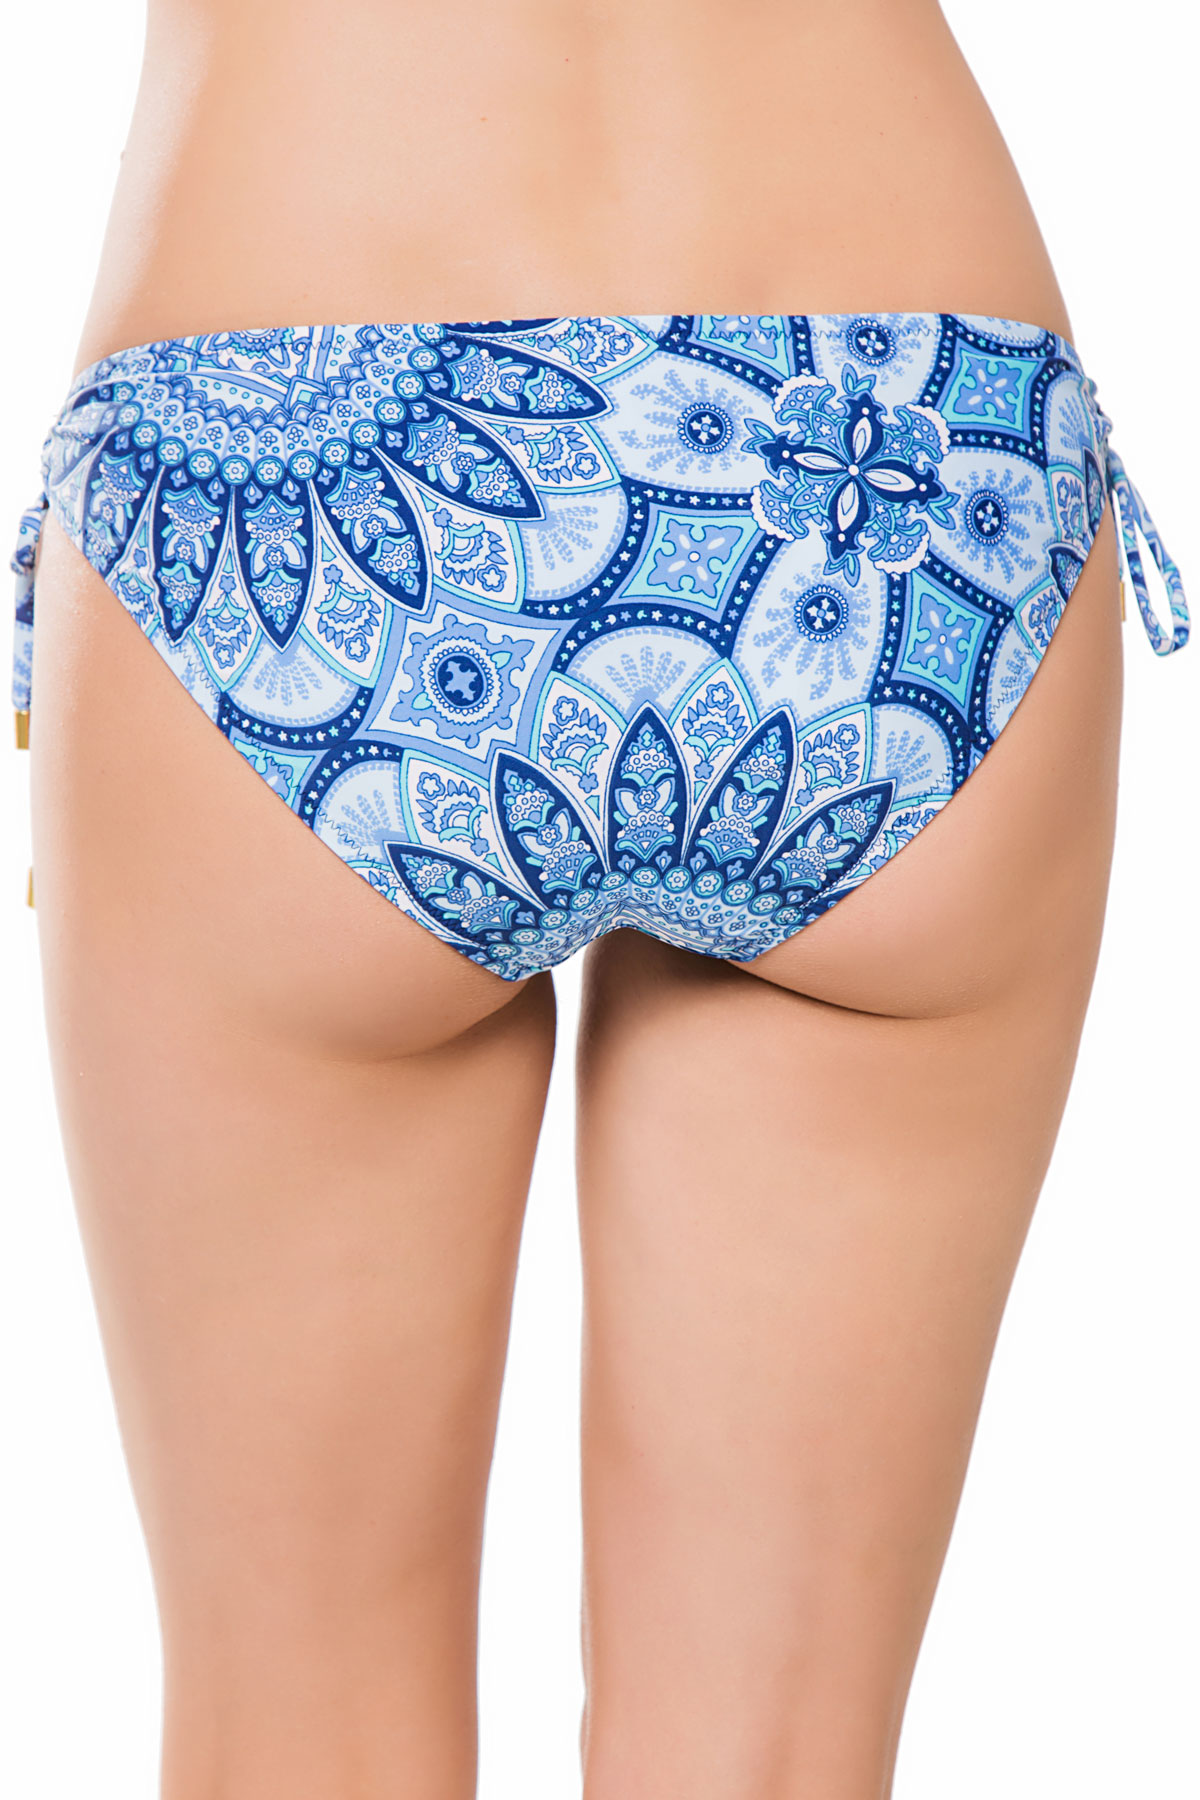 Loop Tie Side Hipster Bikini Bottom - Jamie 2